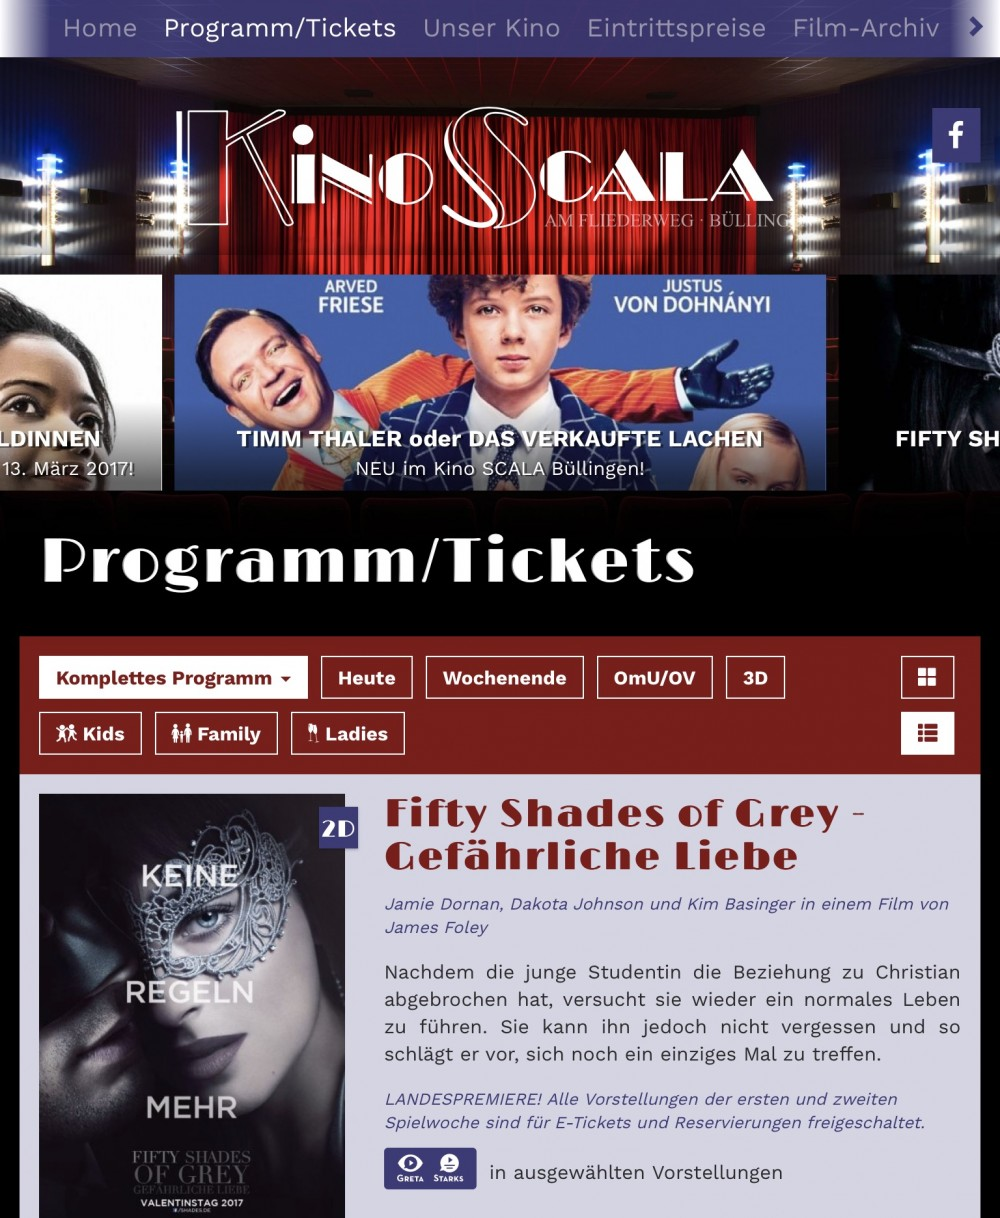 Kino Scala in Büllingen/Belgien mit website.plus 2.0 online